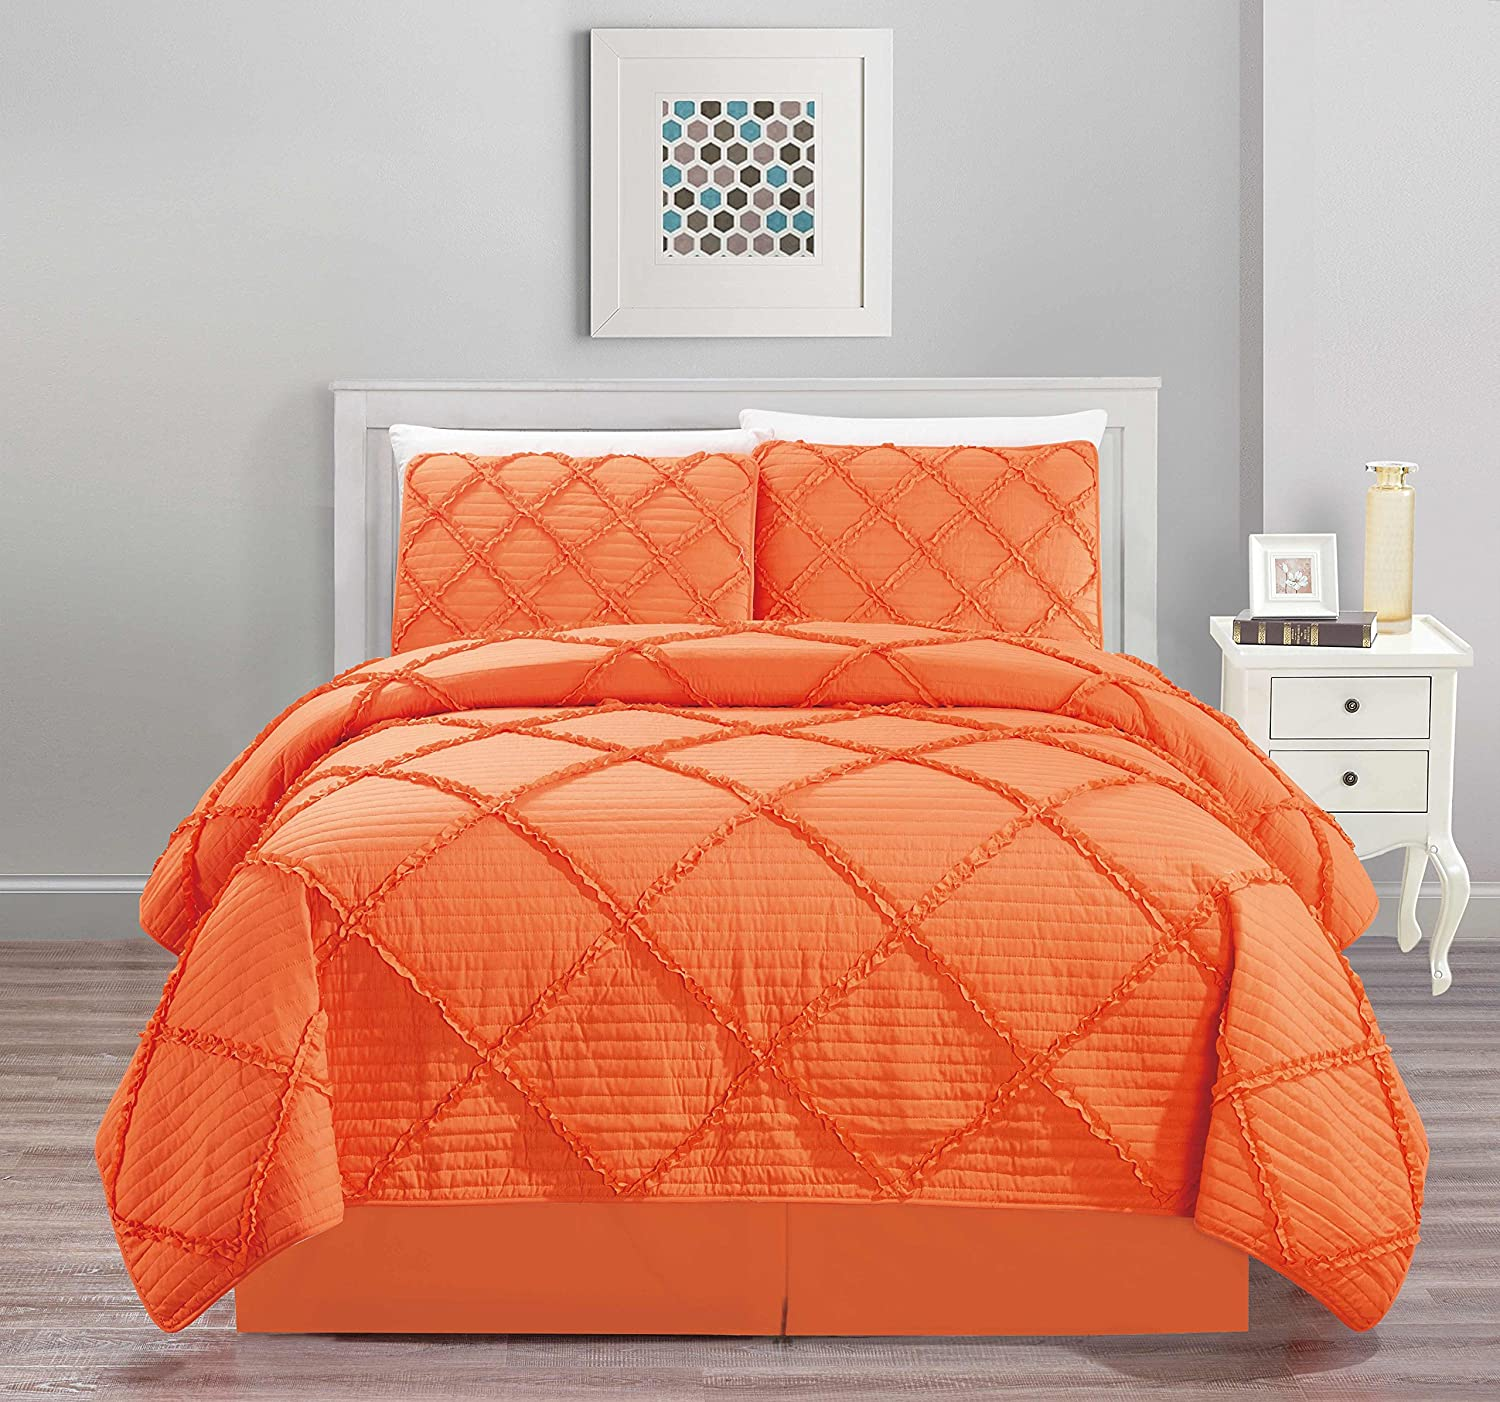 All American Collection New 4pc Diamond Pleated Ruffle Bedspread/Quilt Set with Bedskirt Queen Size, Orange